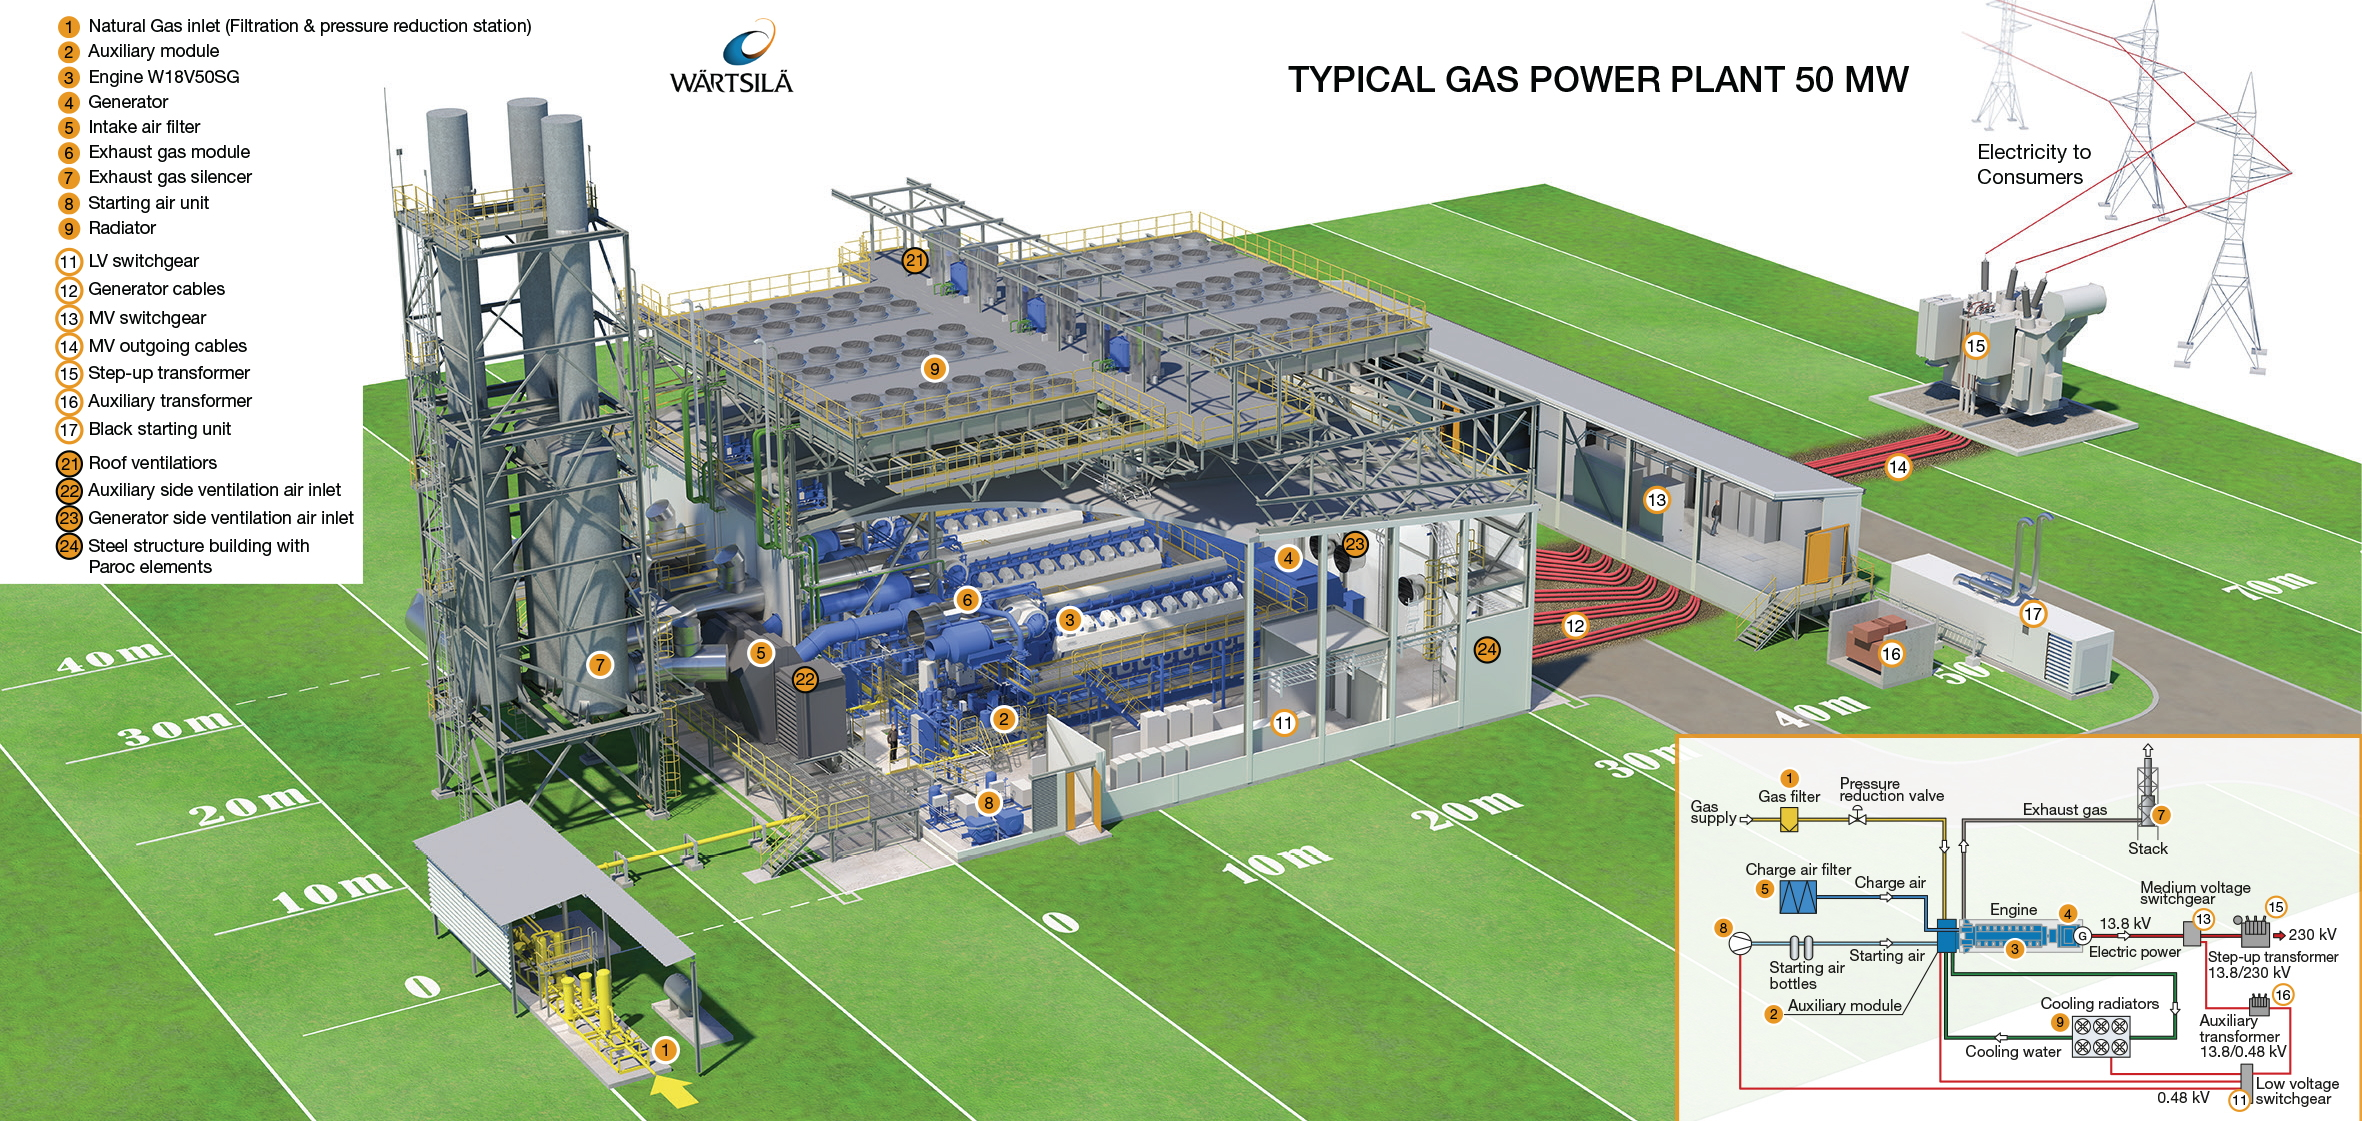 Gas power plants